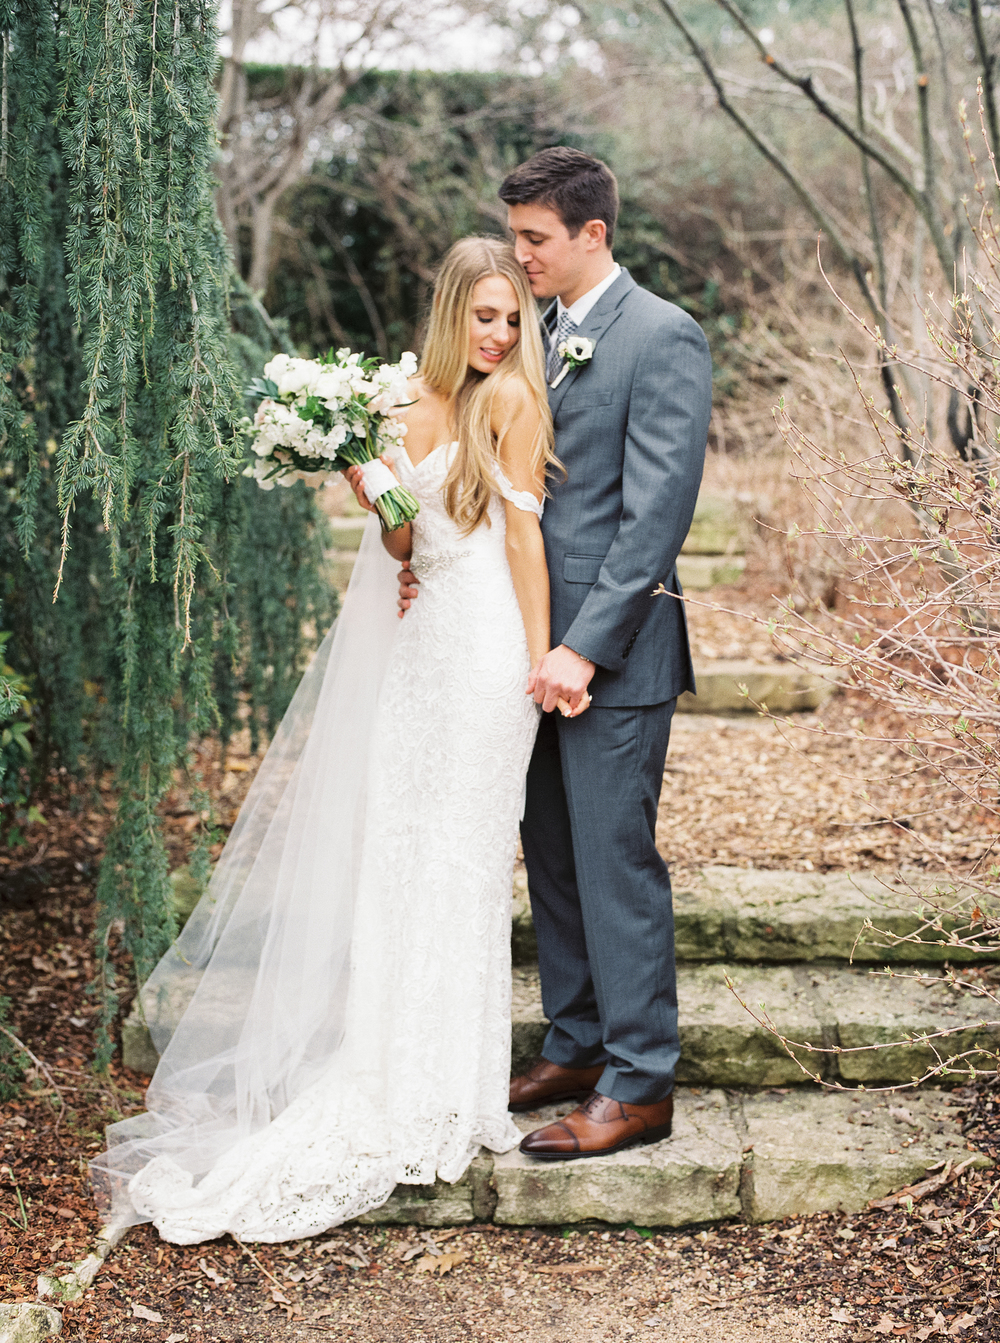 SHELBY & MARC | ROMANTIC GARDEN WEDDING